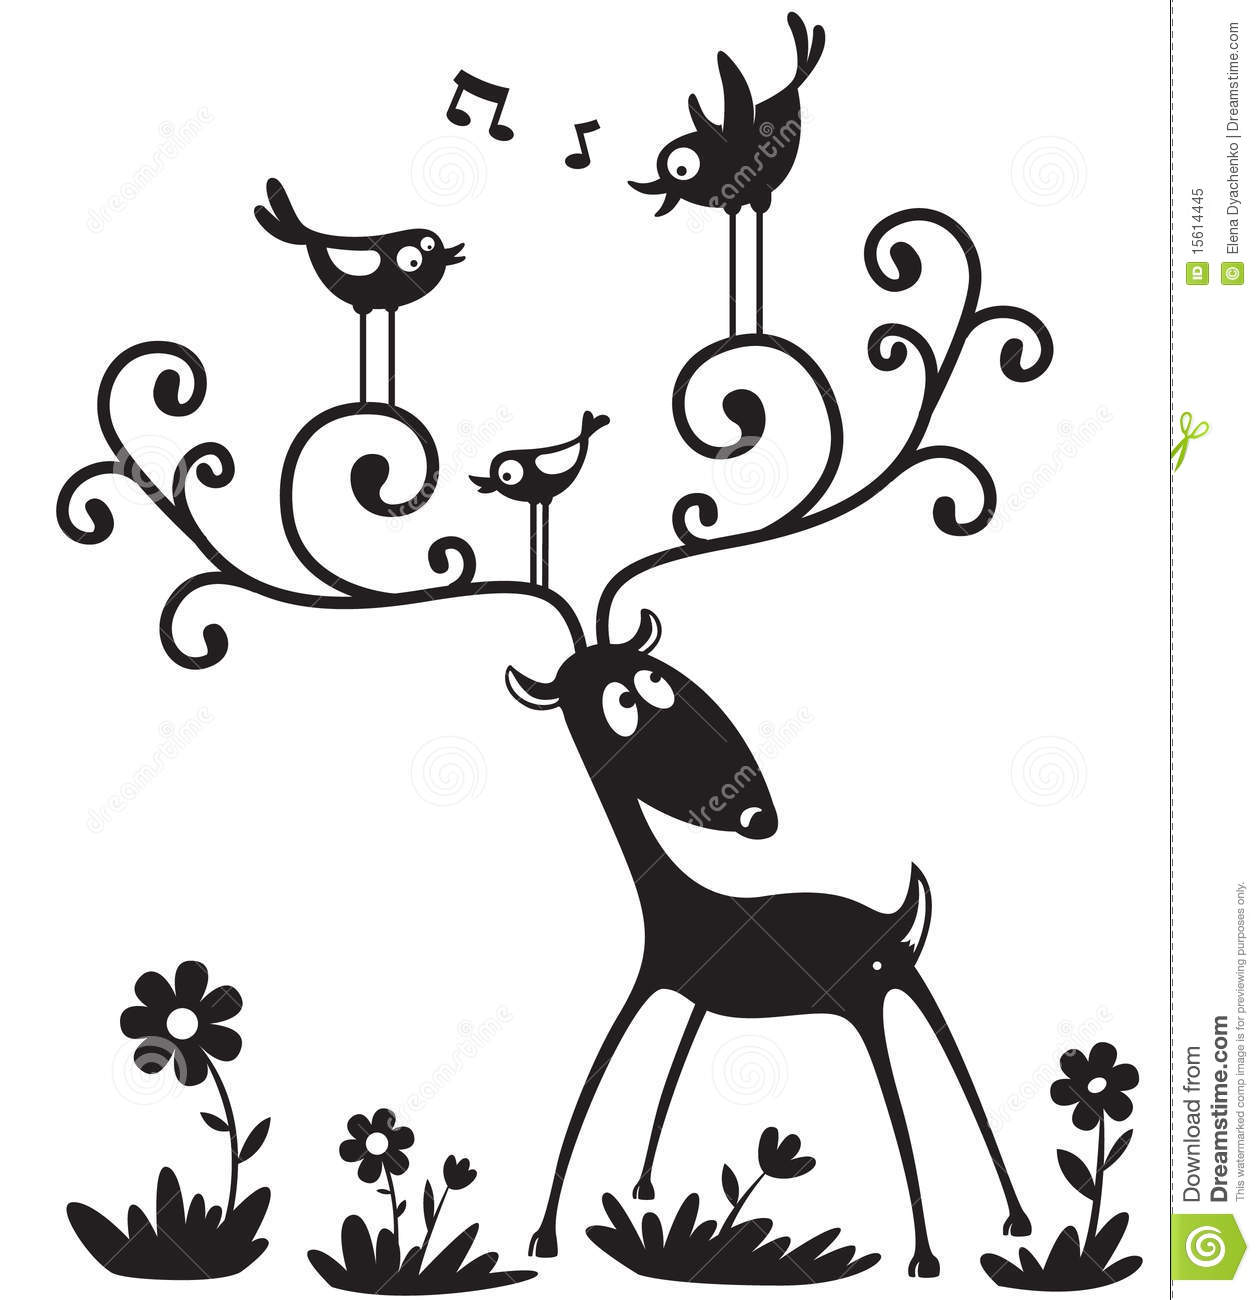 File White tailed deer head illustration additionally Antler Cliparts moreover Deer Antlers Silhouette together with Skull Clipart Black And White as well Charming Deer Hunting Logos 82 About Remodel Design A Logo With Deer Hunting Logos. on deer antler silhouette clip art